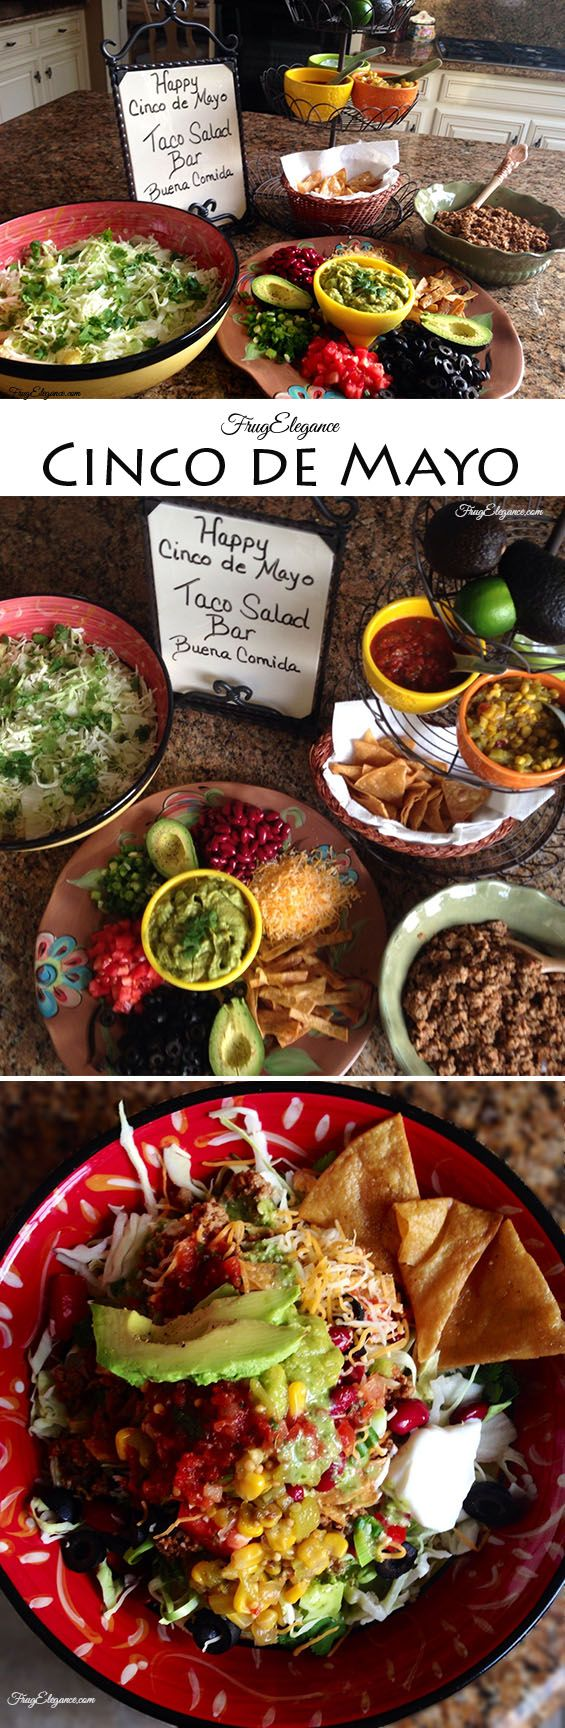 Healthy Taco Salad~make a salad bar for your family with ground turkey and healthy options for a tasty salad. I also enjoy Traders Joes lowfat cilantro dressing #tacosalad  #cincodemayo  #salad